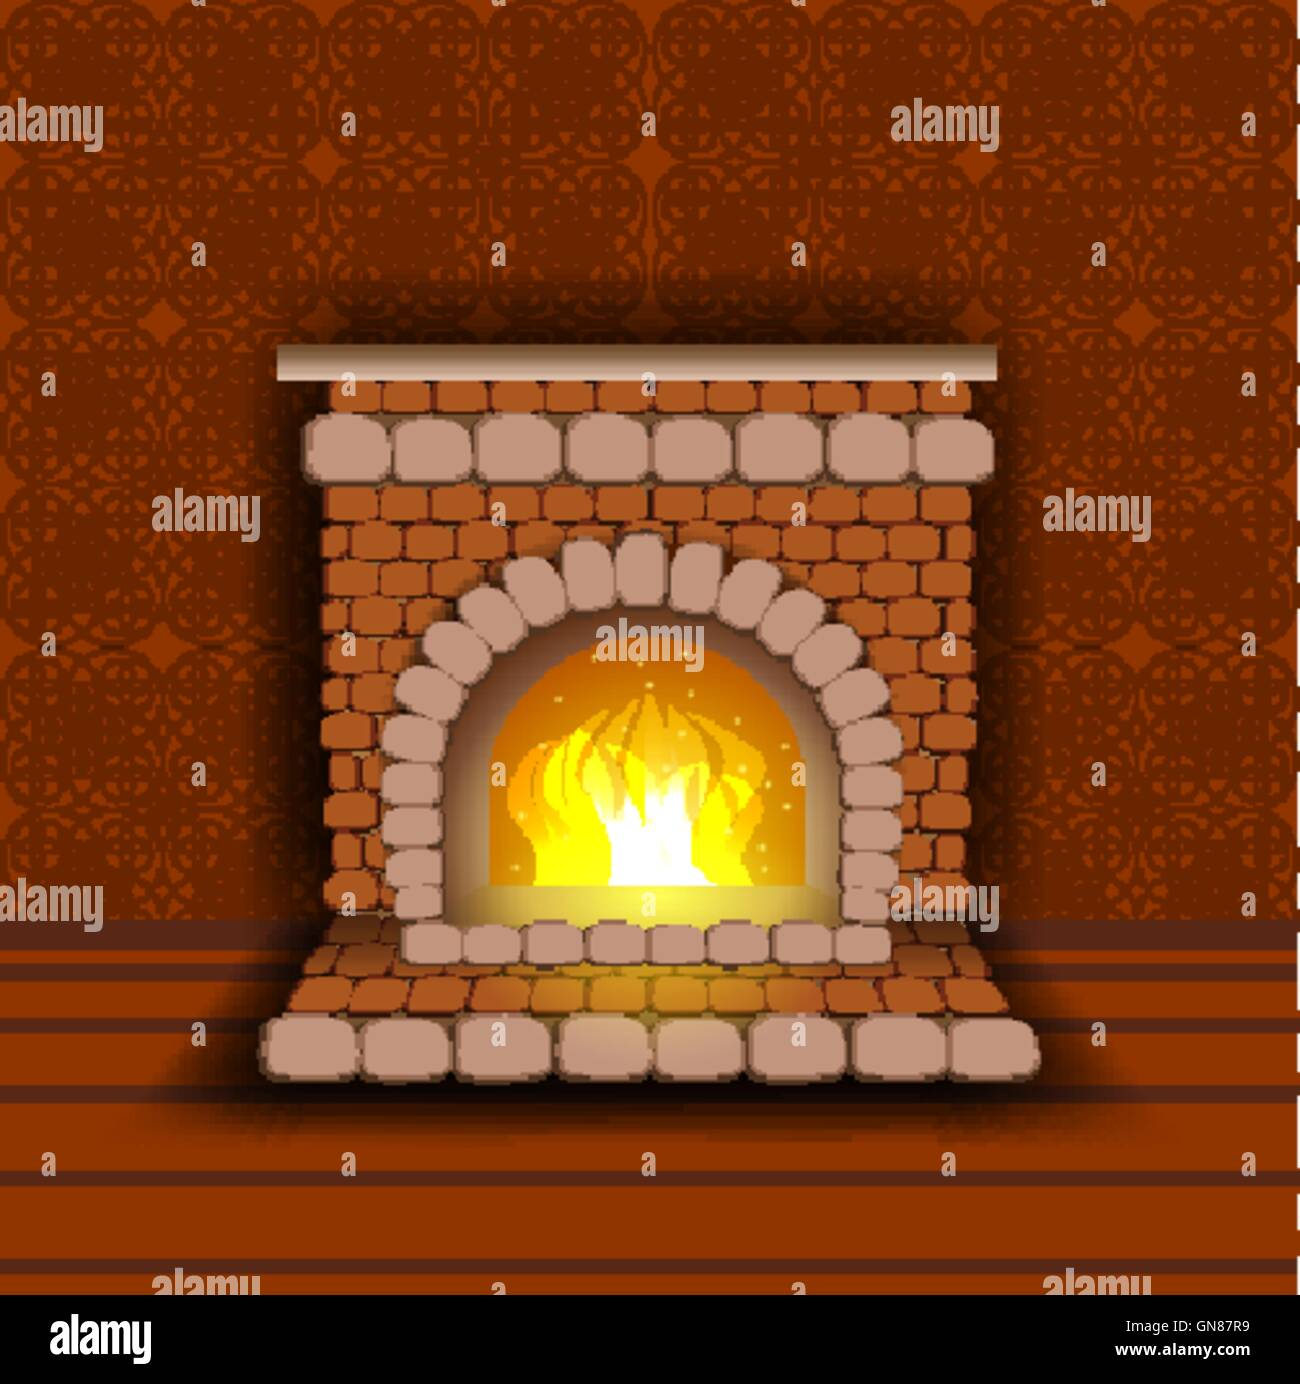 Stone fireplace with fire. Warm shades of red - Stock Vector